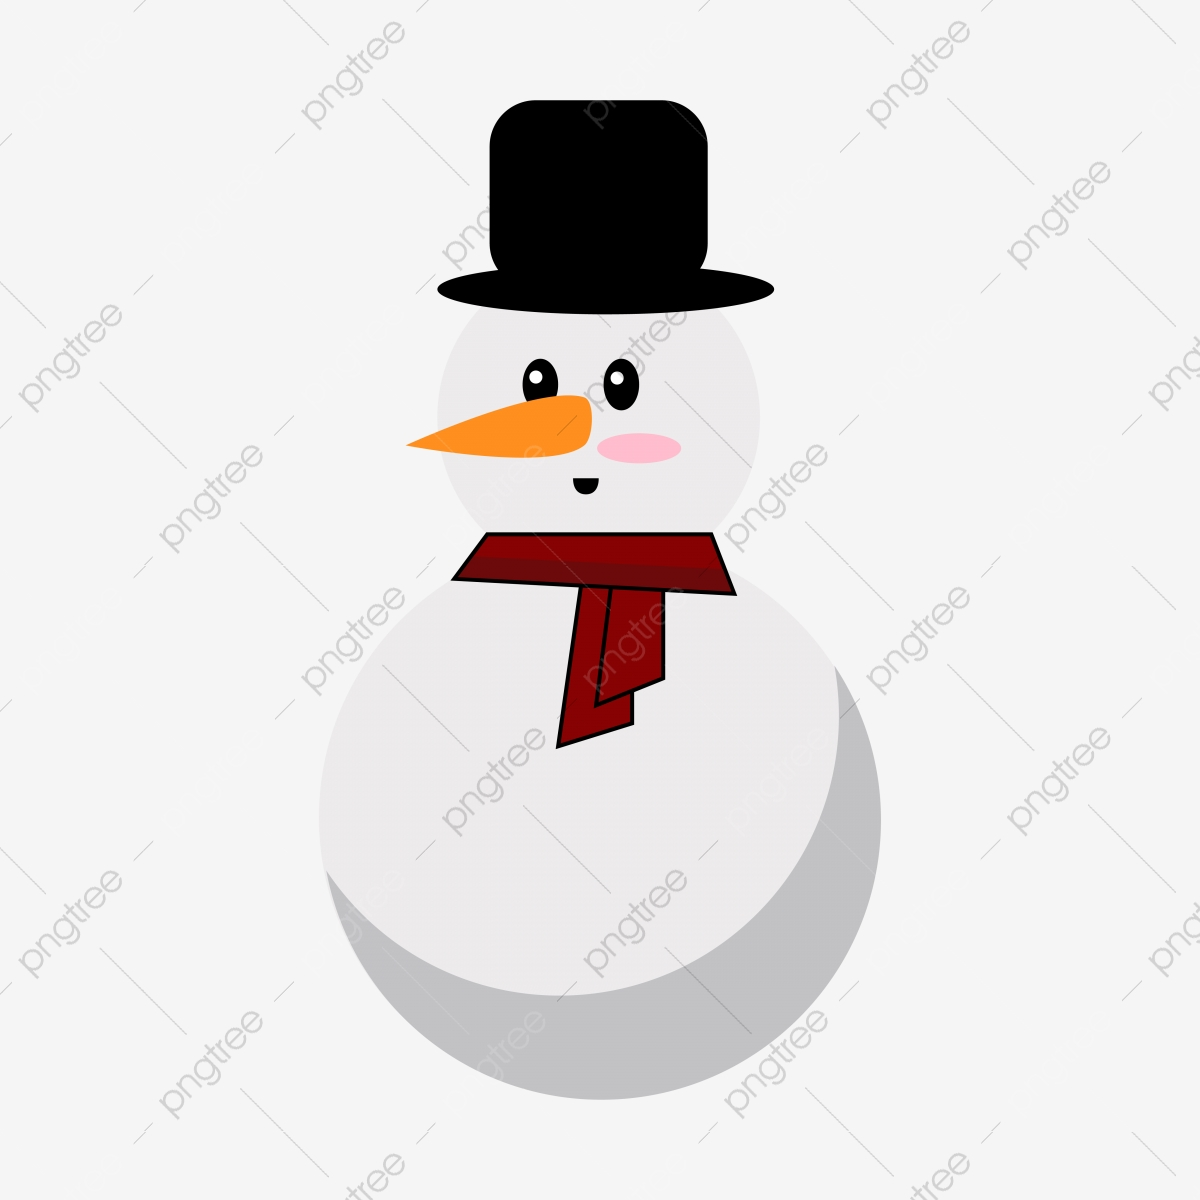 snowman clipart png vector element snow man snowman snow png and vector with transparent background for free download https pngtree com freepng snowman clipart png vector element 5004065 html